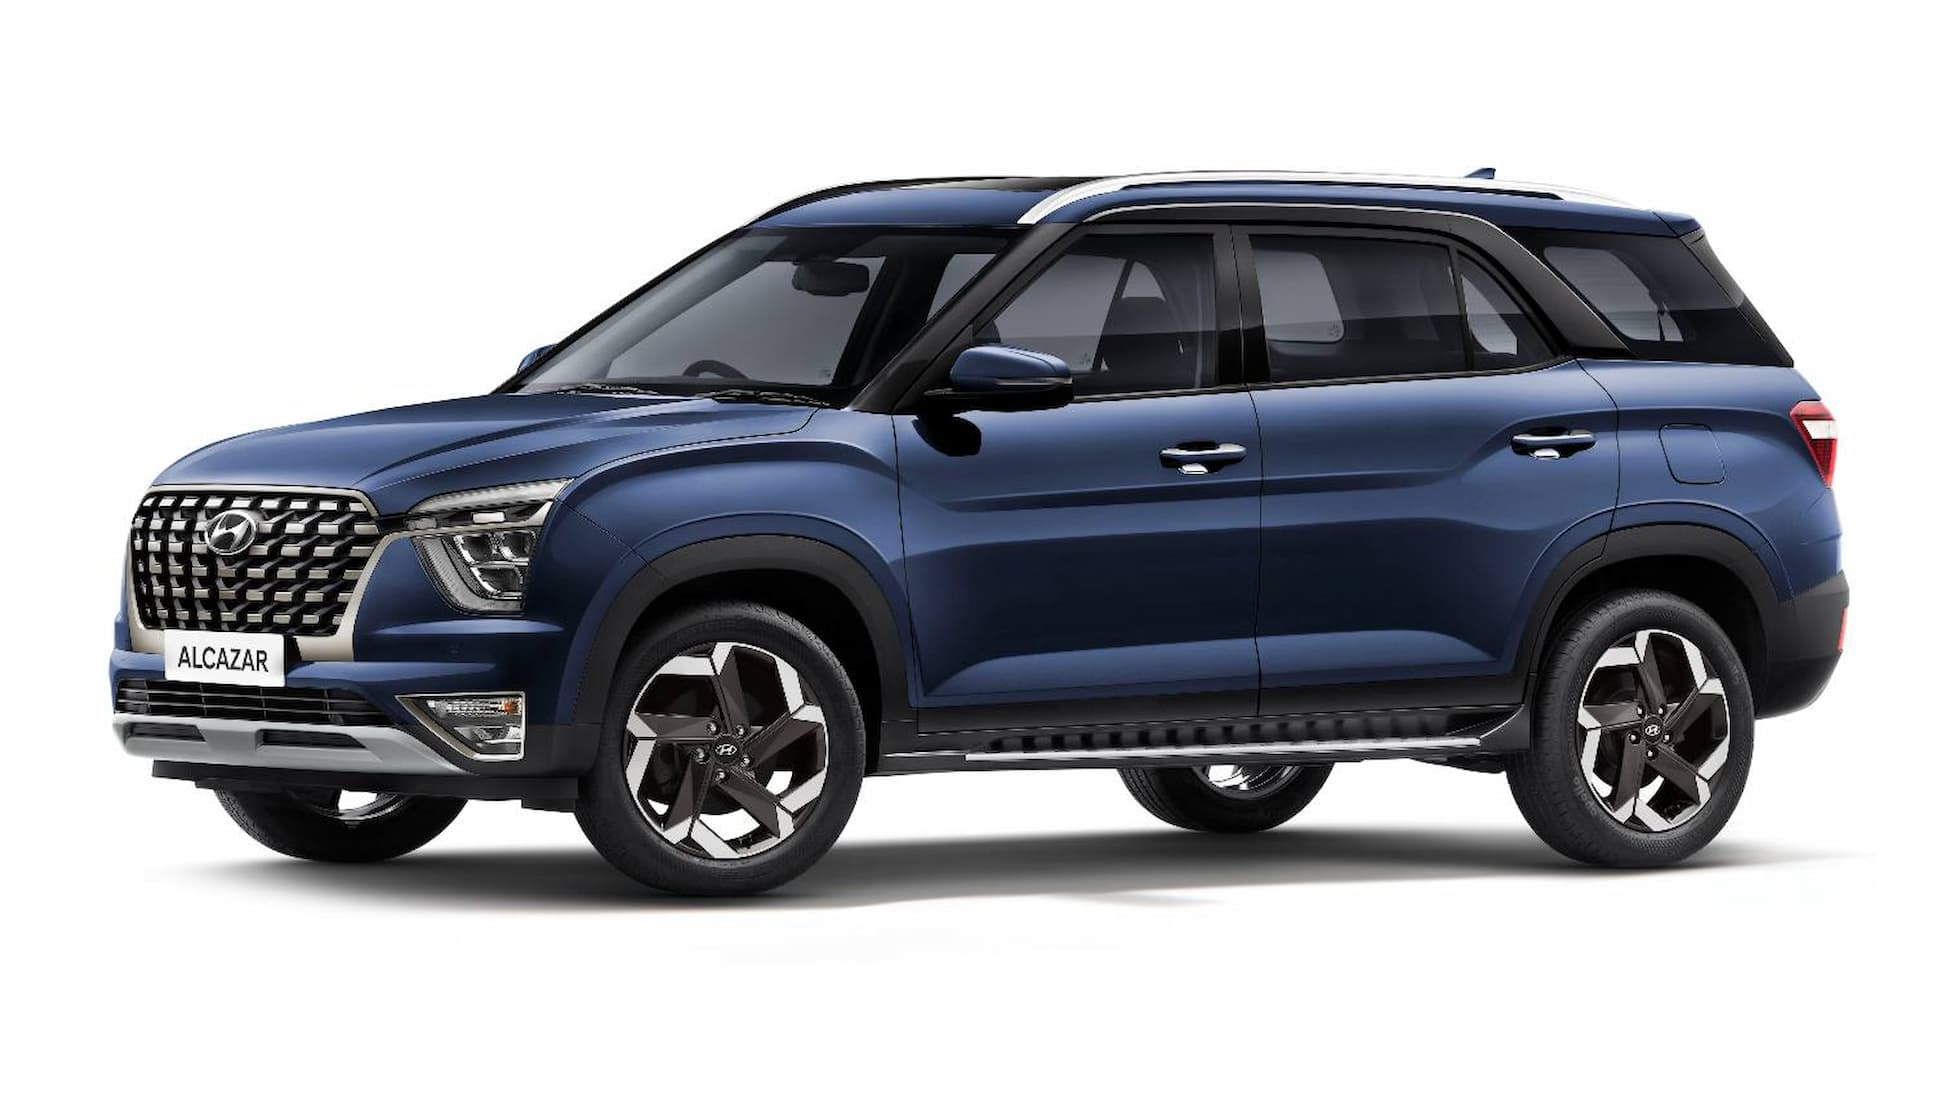 hyundai alcazar launched in india at starting price of rs 16 30 lakh